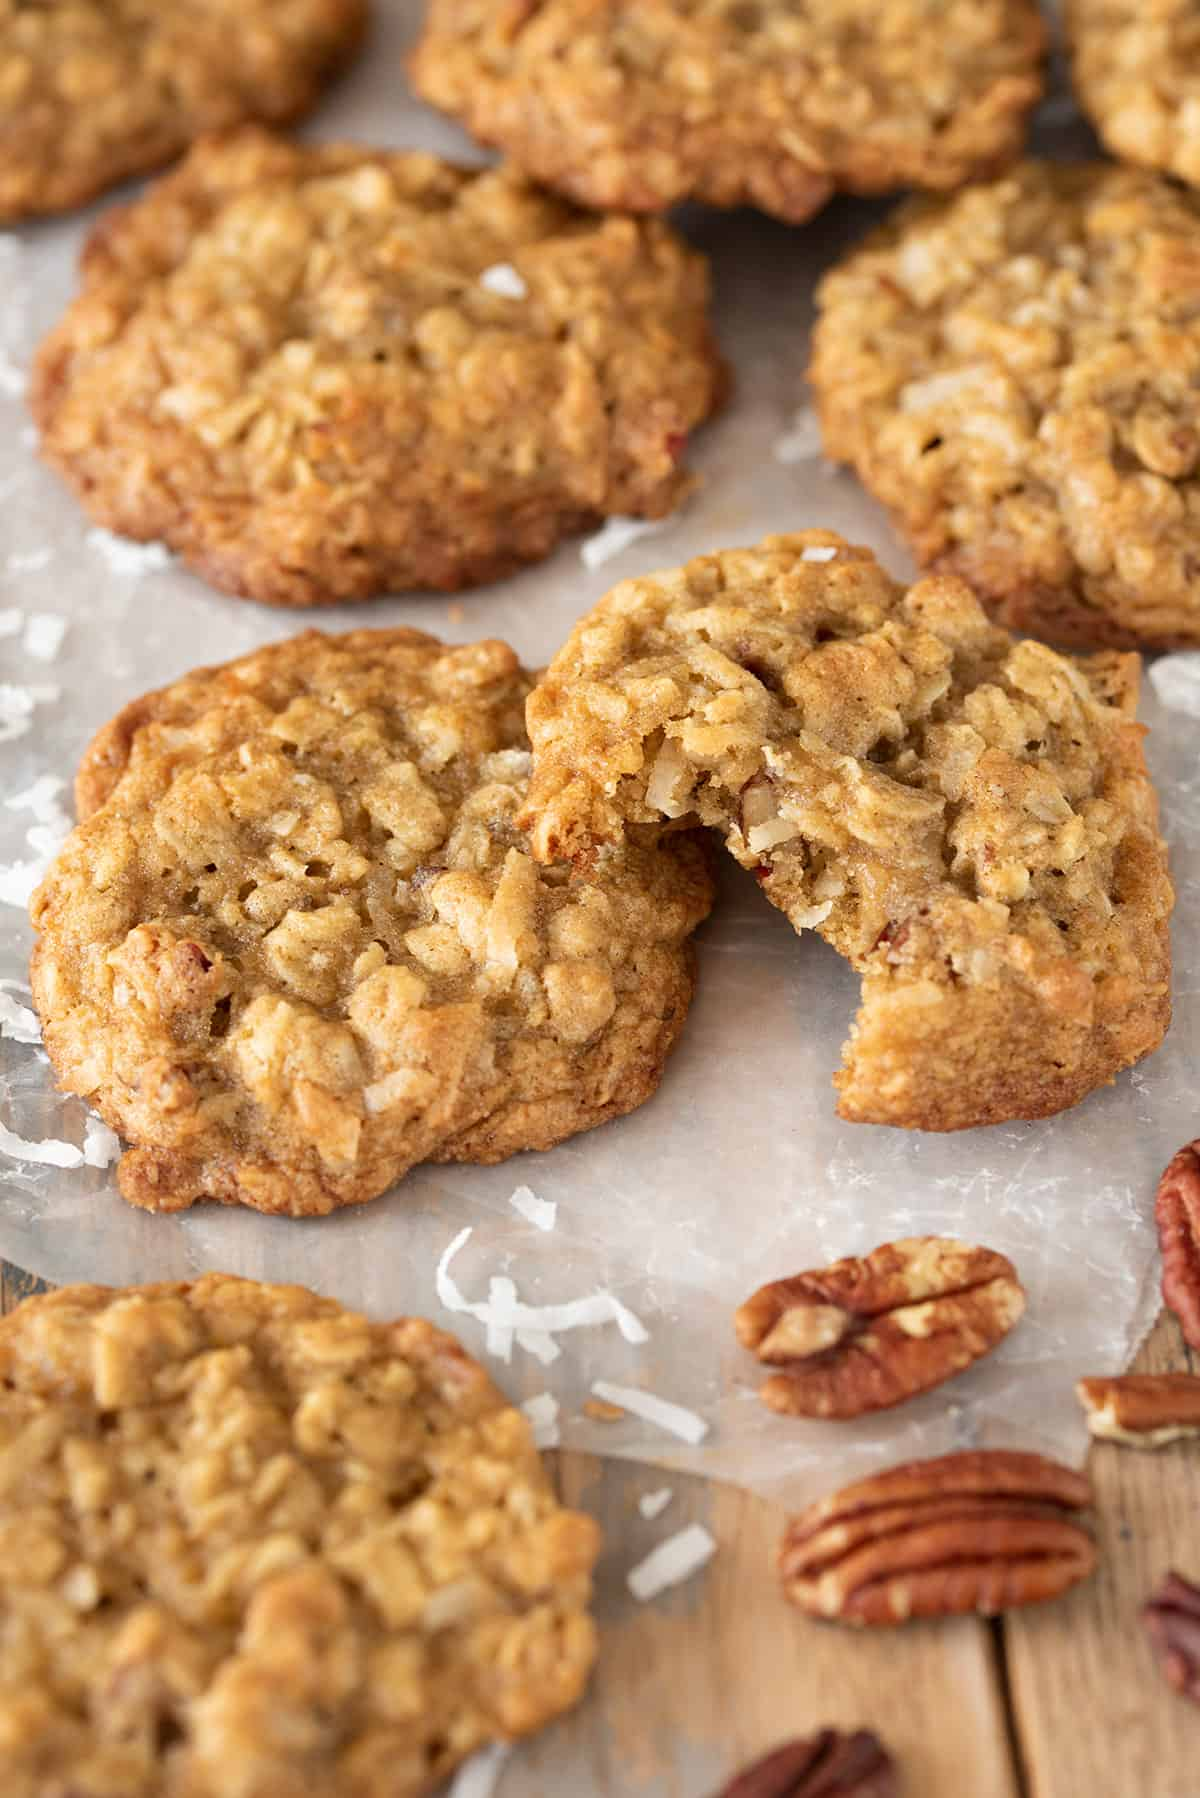 Coconut Pecan Cookies laid out on wax paper. One cookie has a bite taken out to show texture of the cookie.